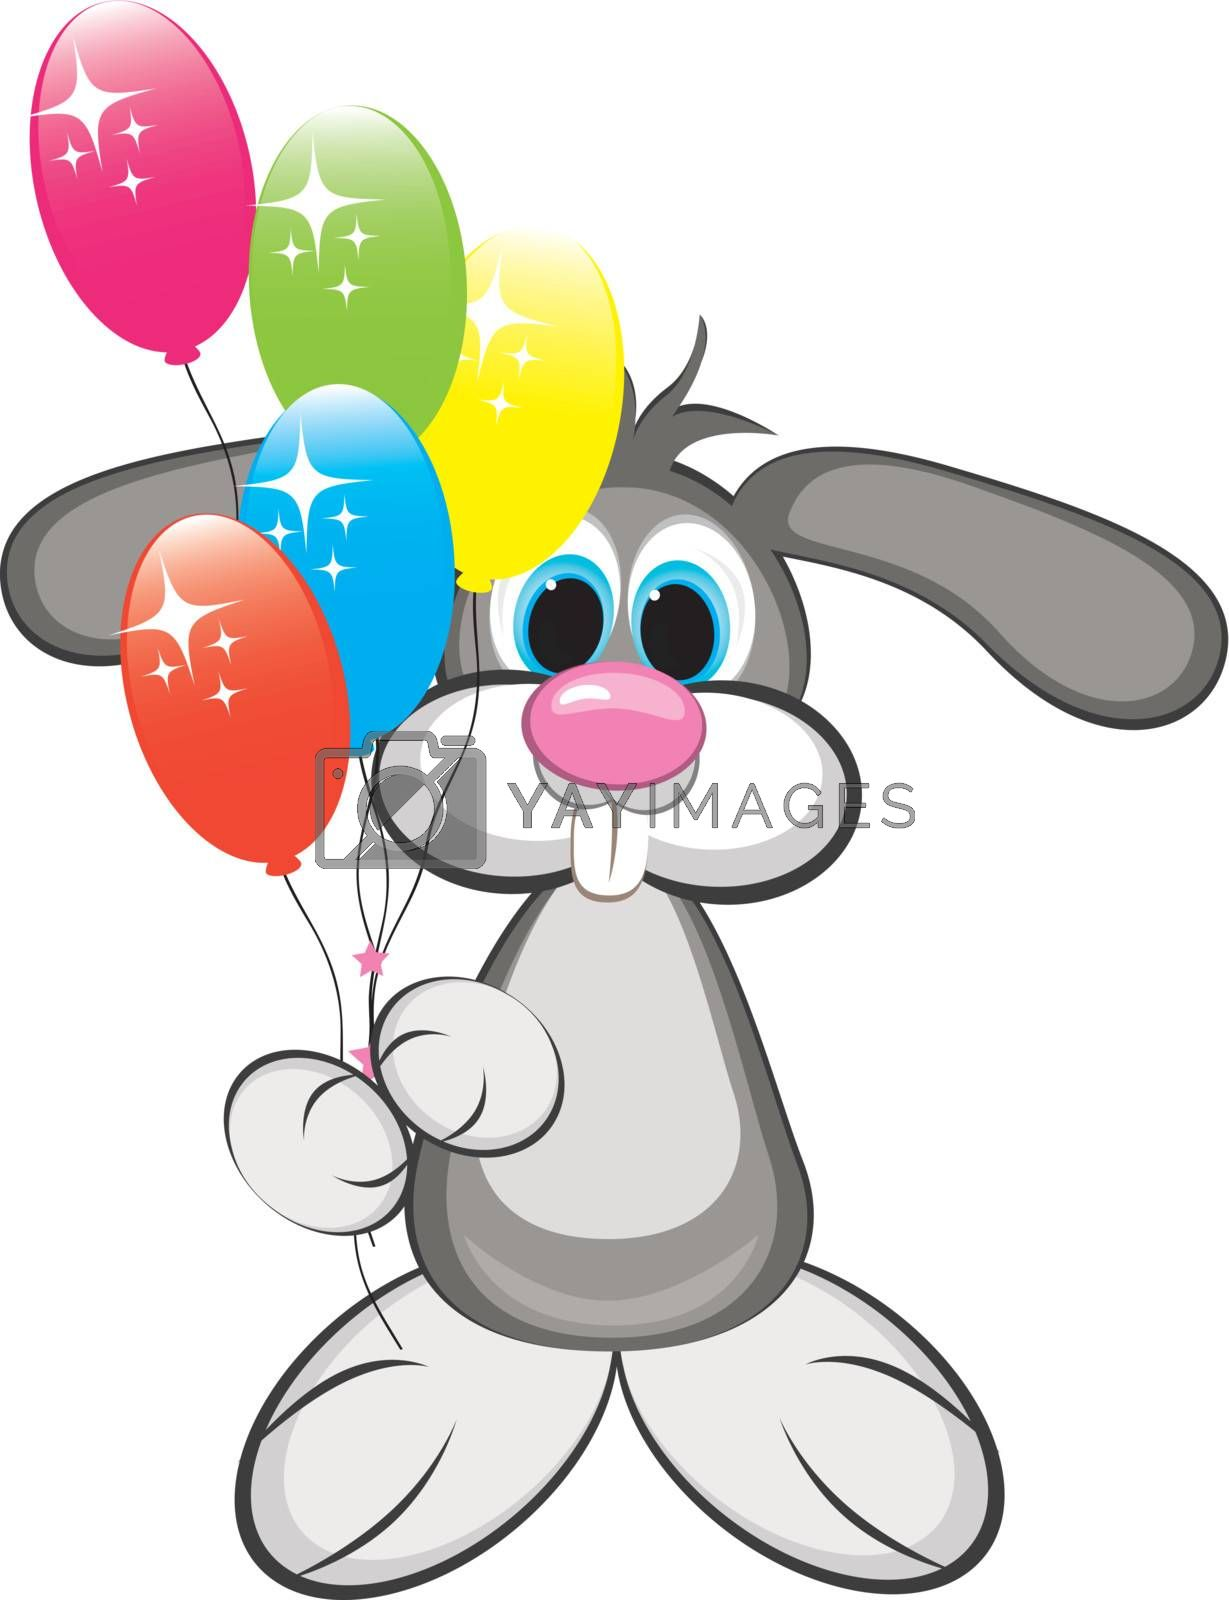 Cartoon rabbit with colorful balloons. Illustration on white background